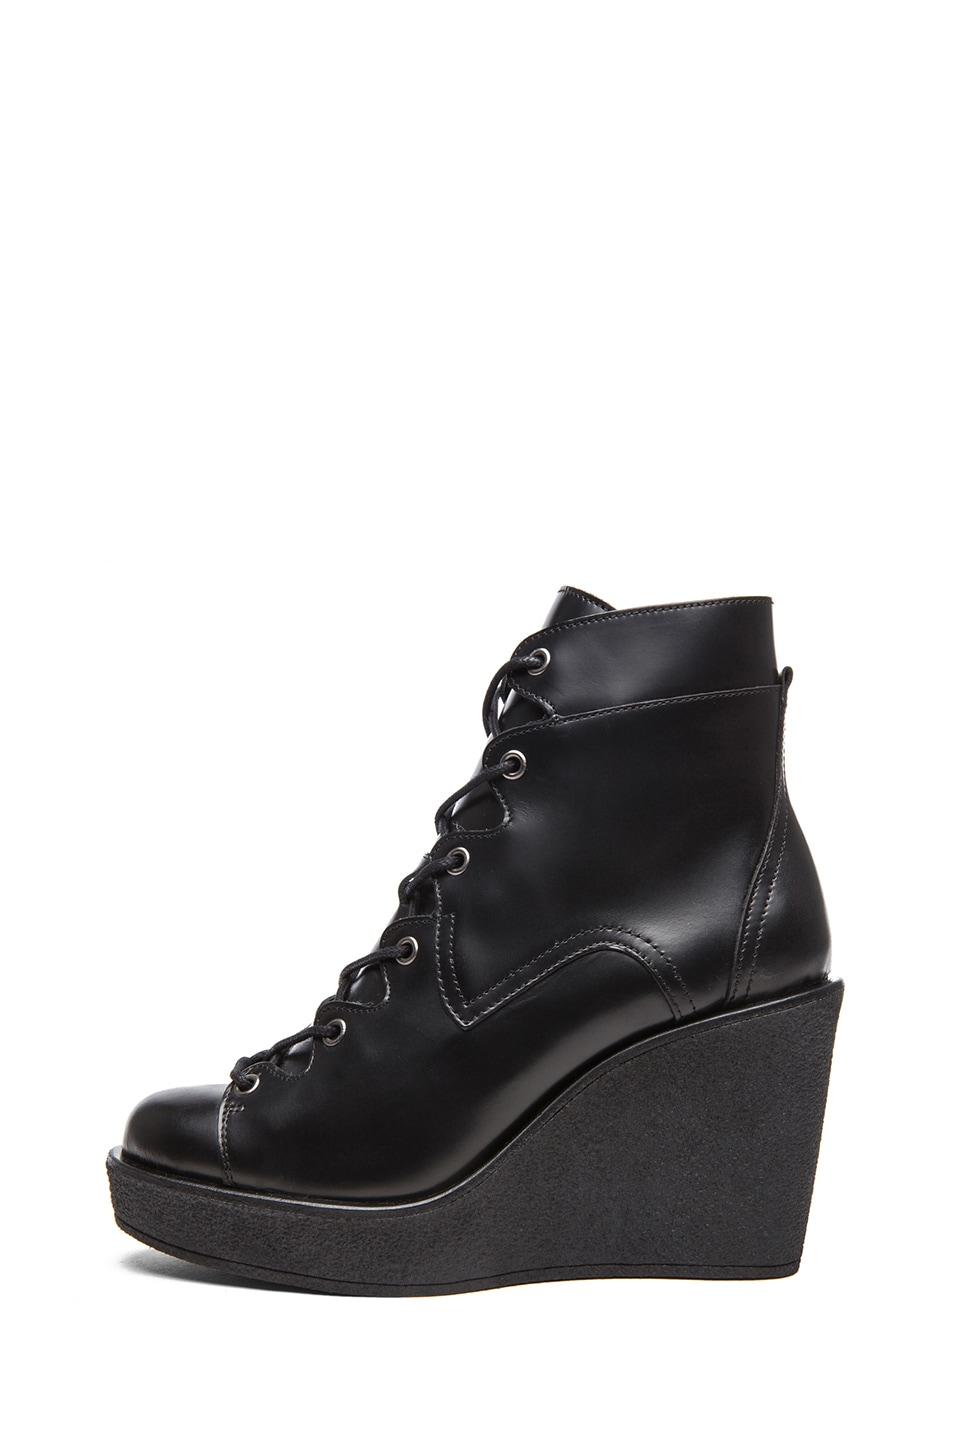 Image 1 of Pierre Hardy Cordovan Matte Calfskin Leather Wedge Booties in Black